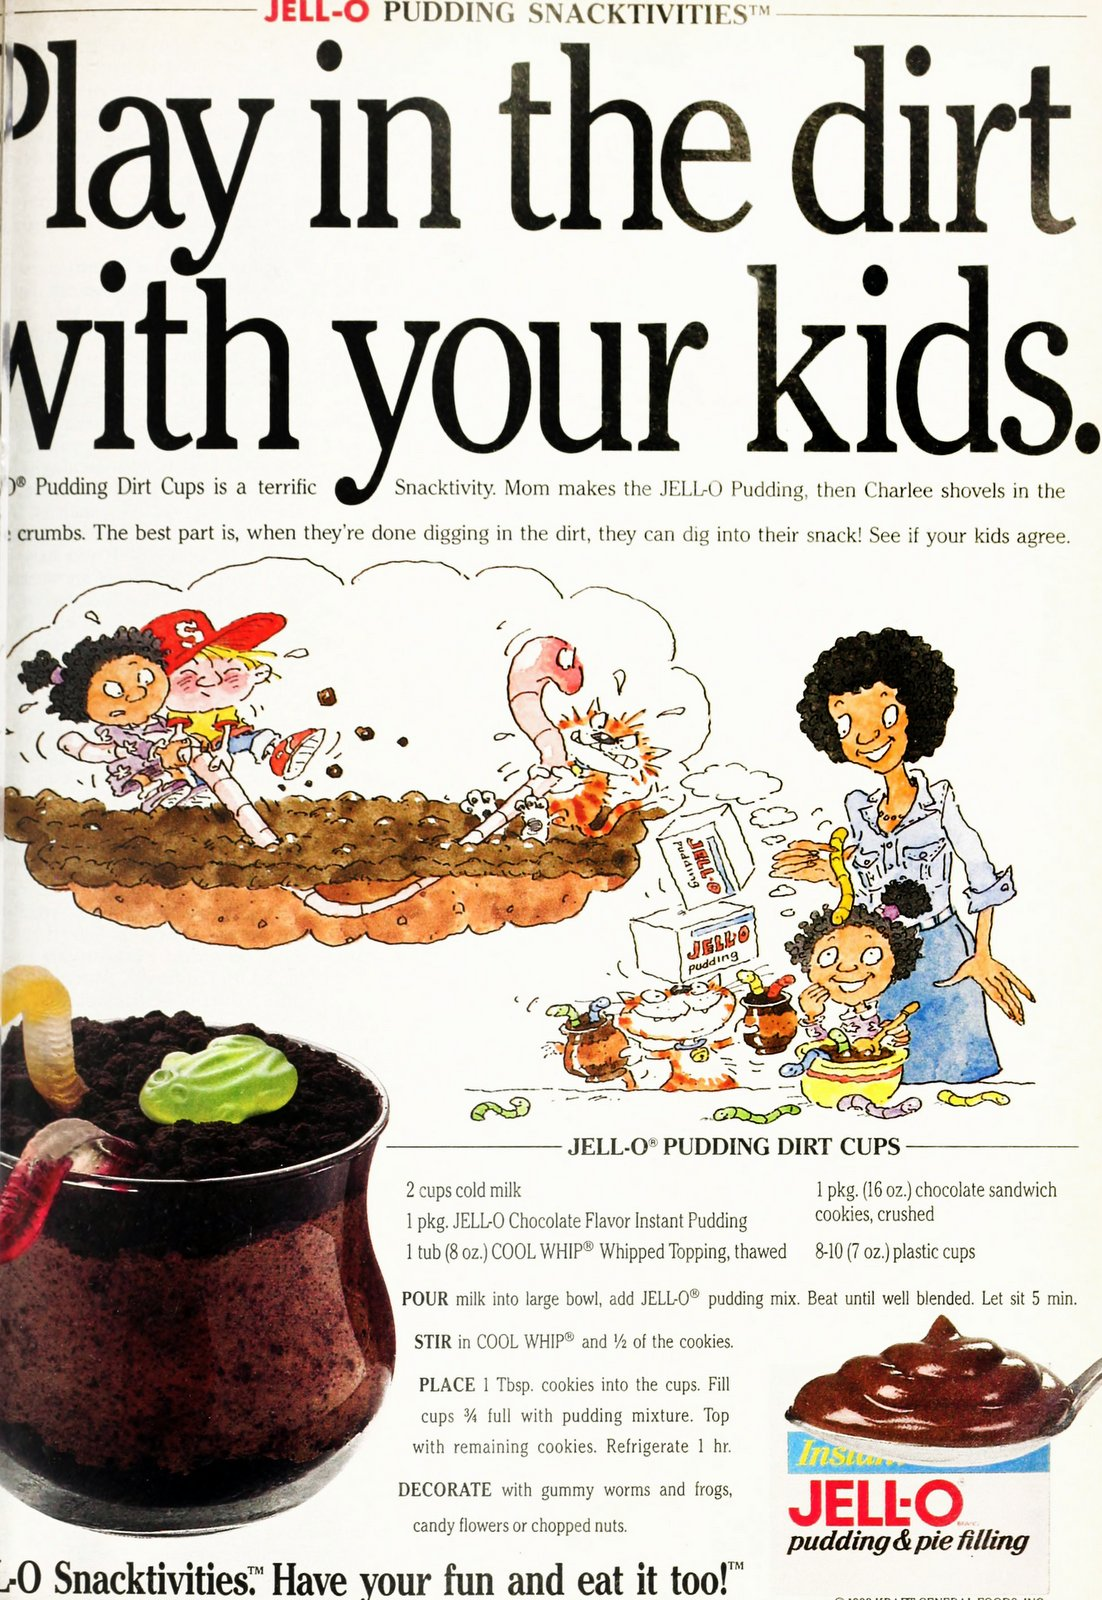 Jell-o pudding dirt cups Oreo crumbs recipe (1993)